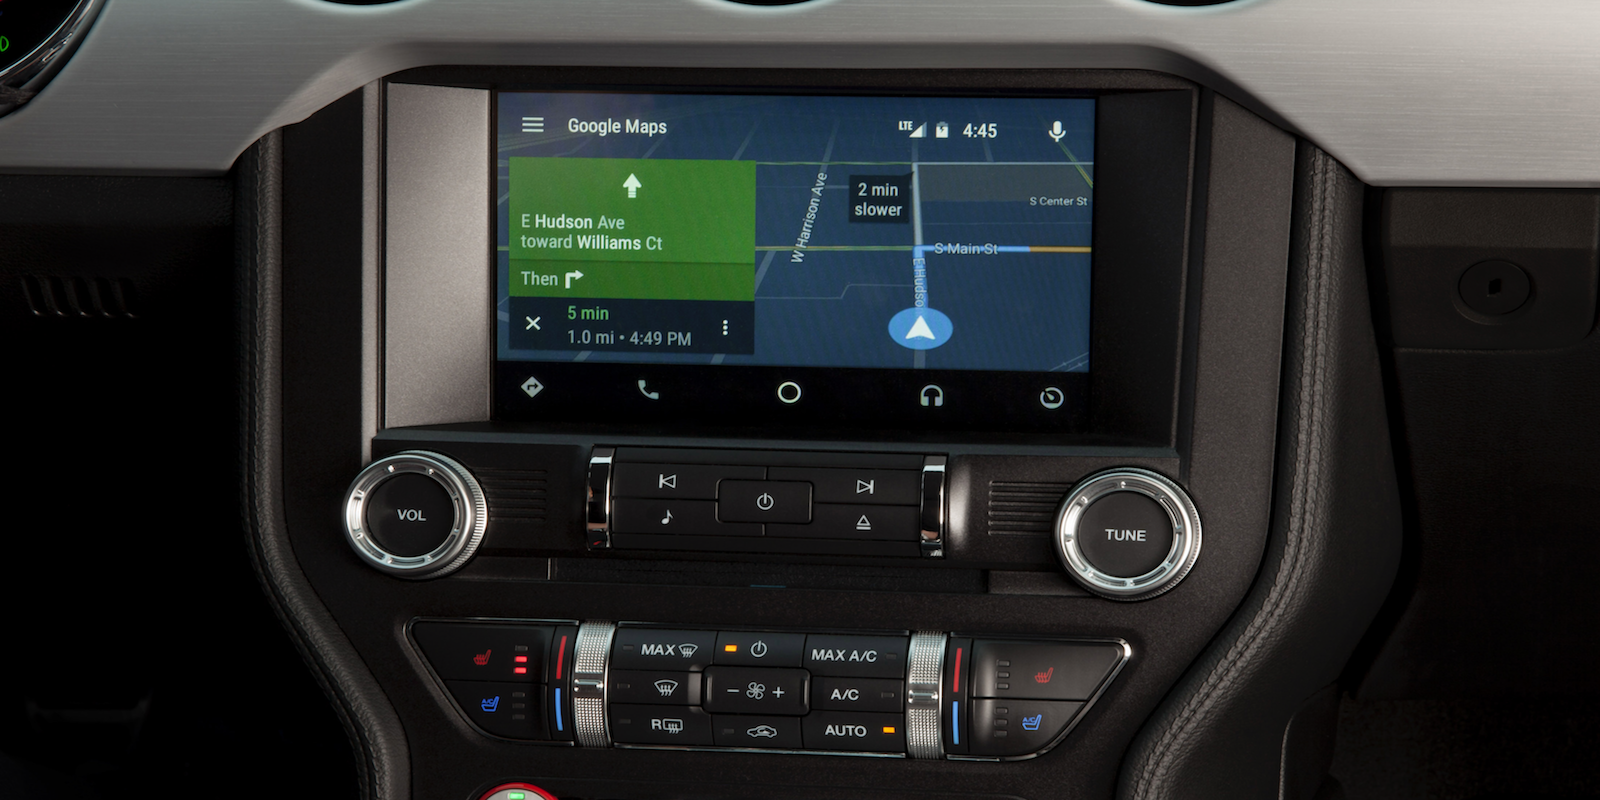 Software Update Allows All 2016 Ford Cars To Use Android Auto 9to5google